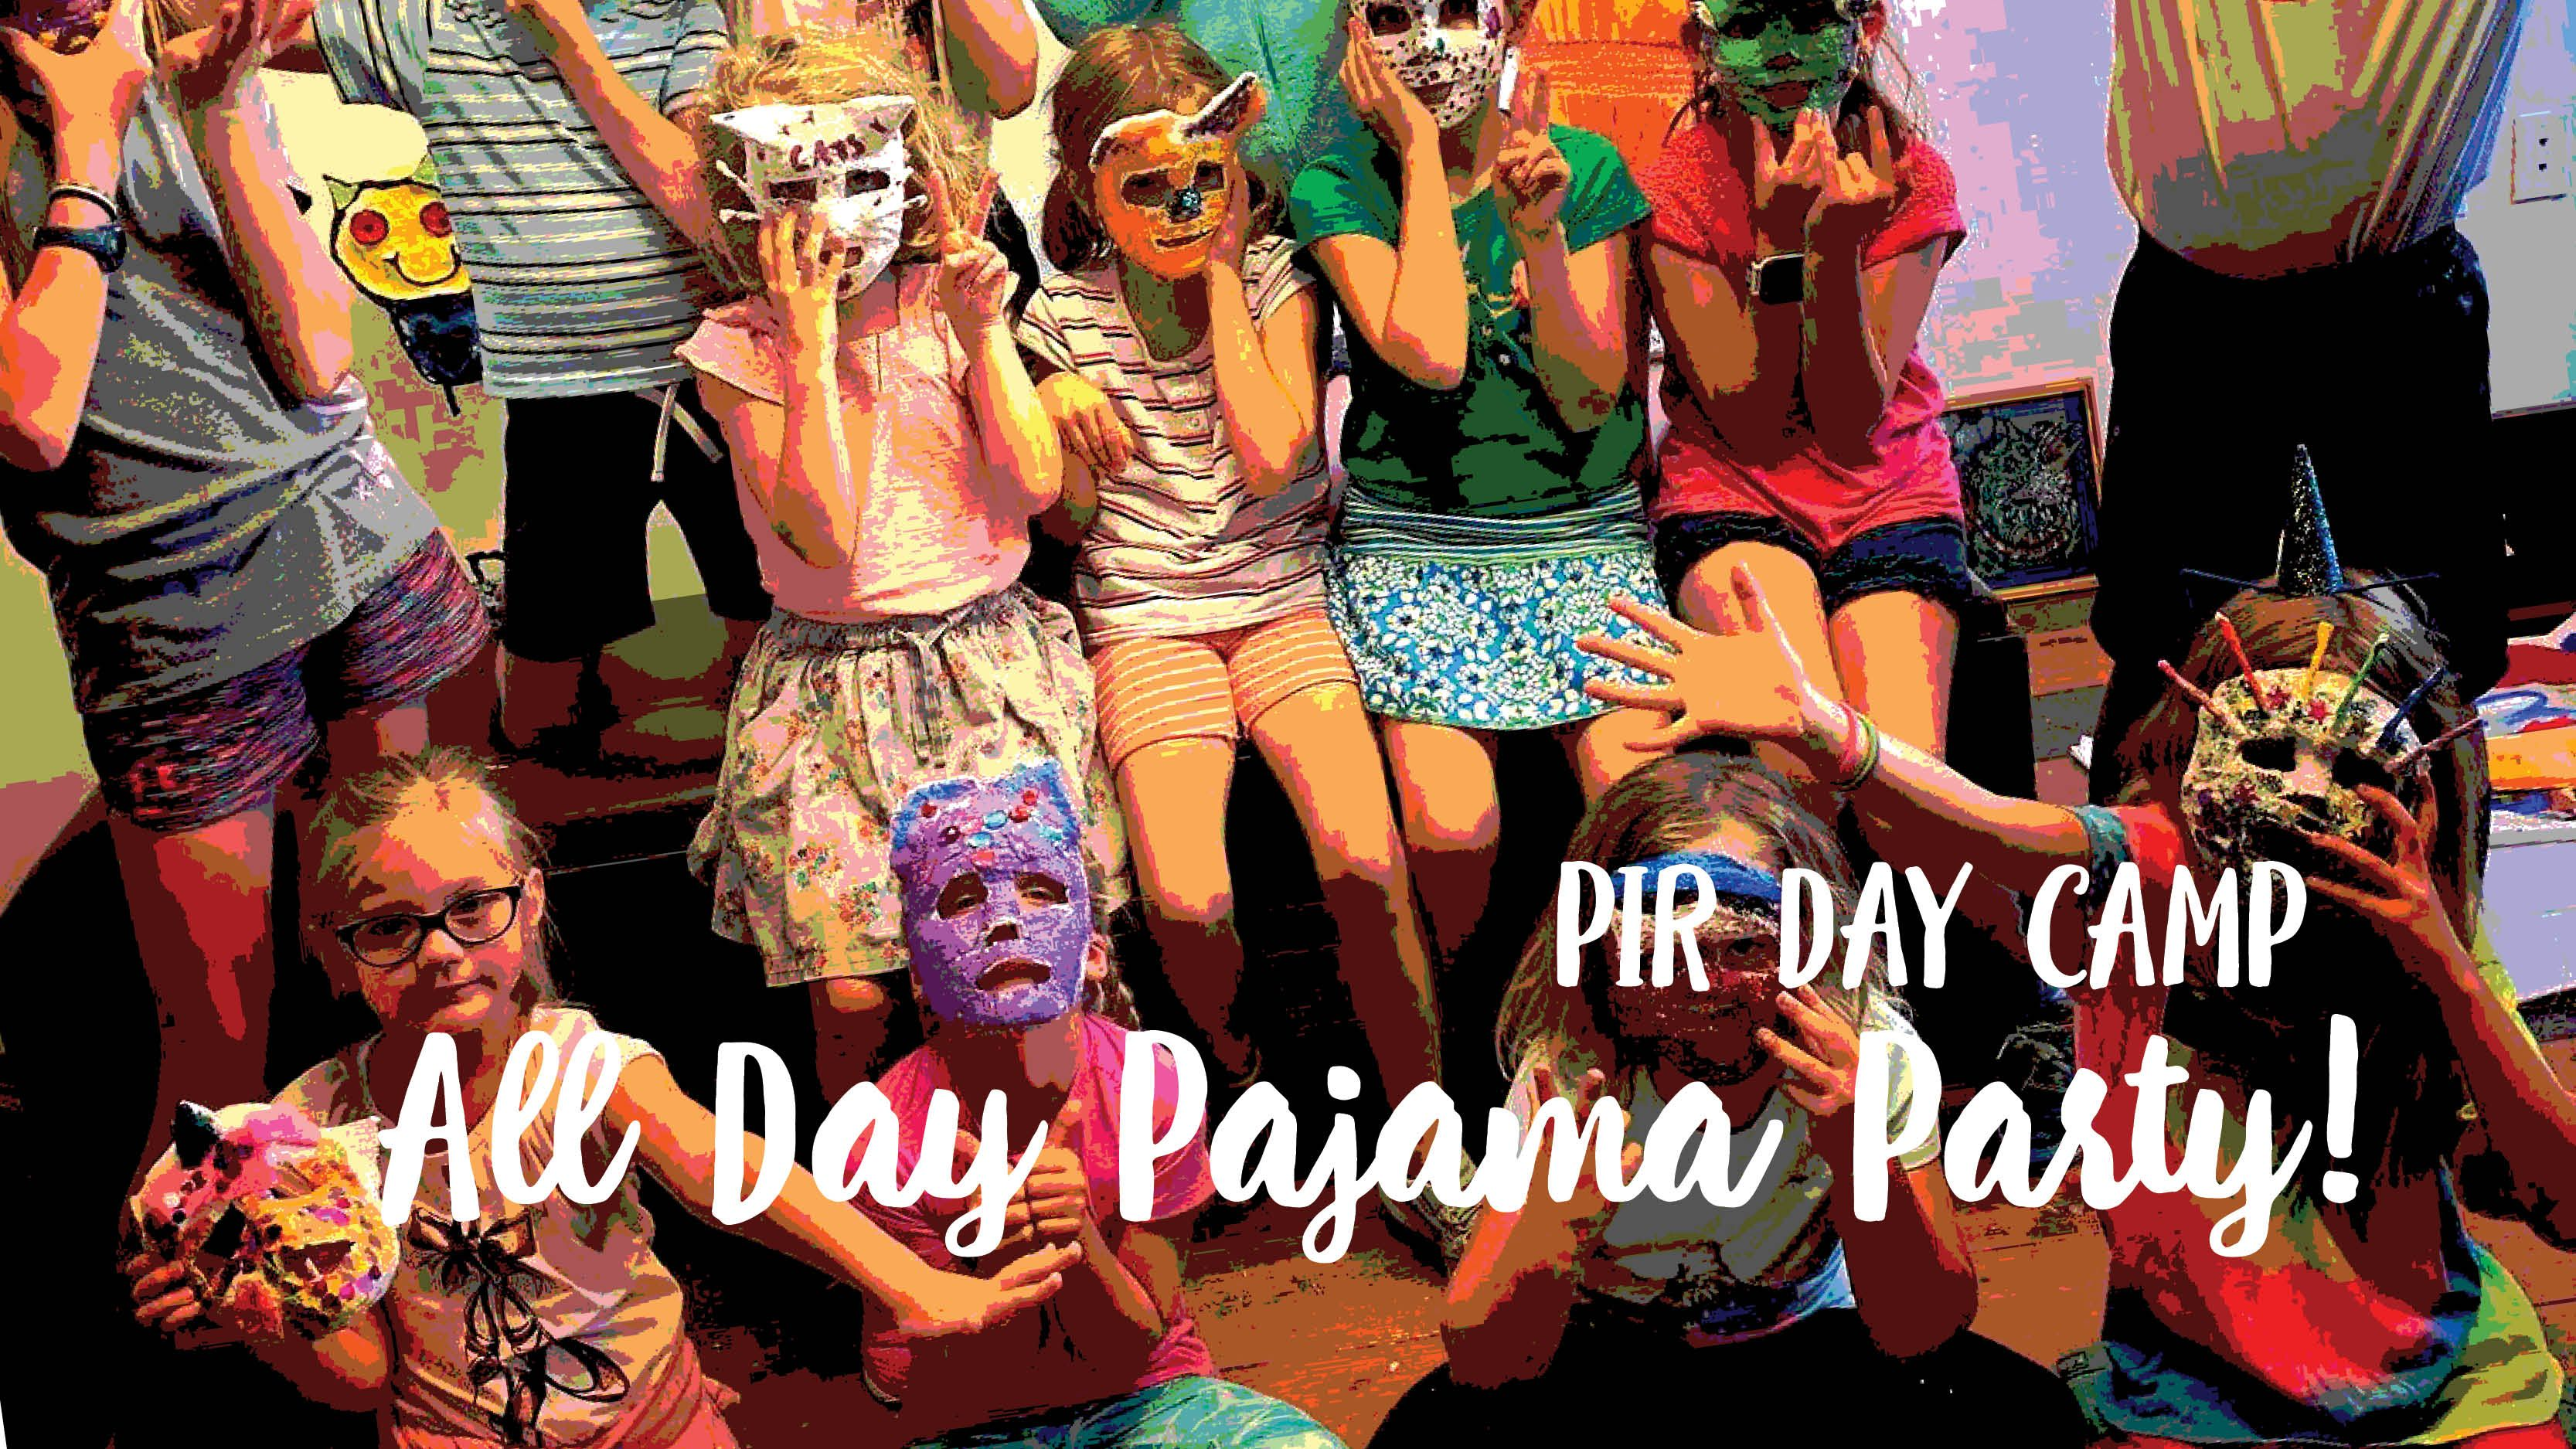 PIR Day Camp: All Day Pajama Party!